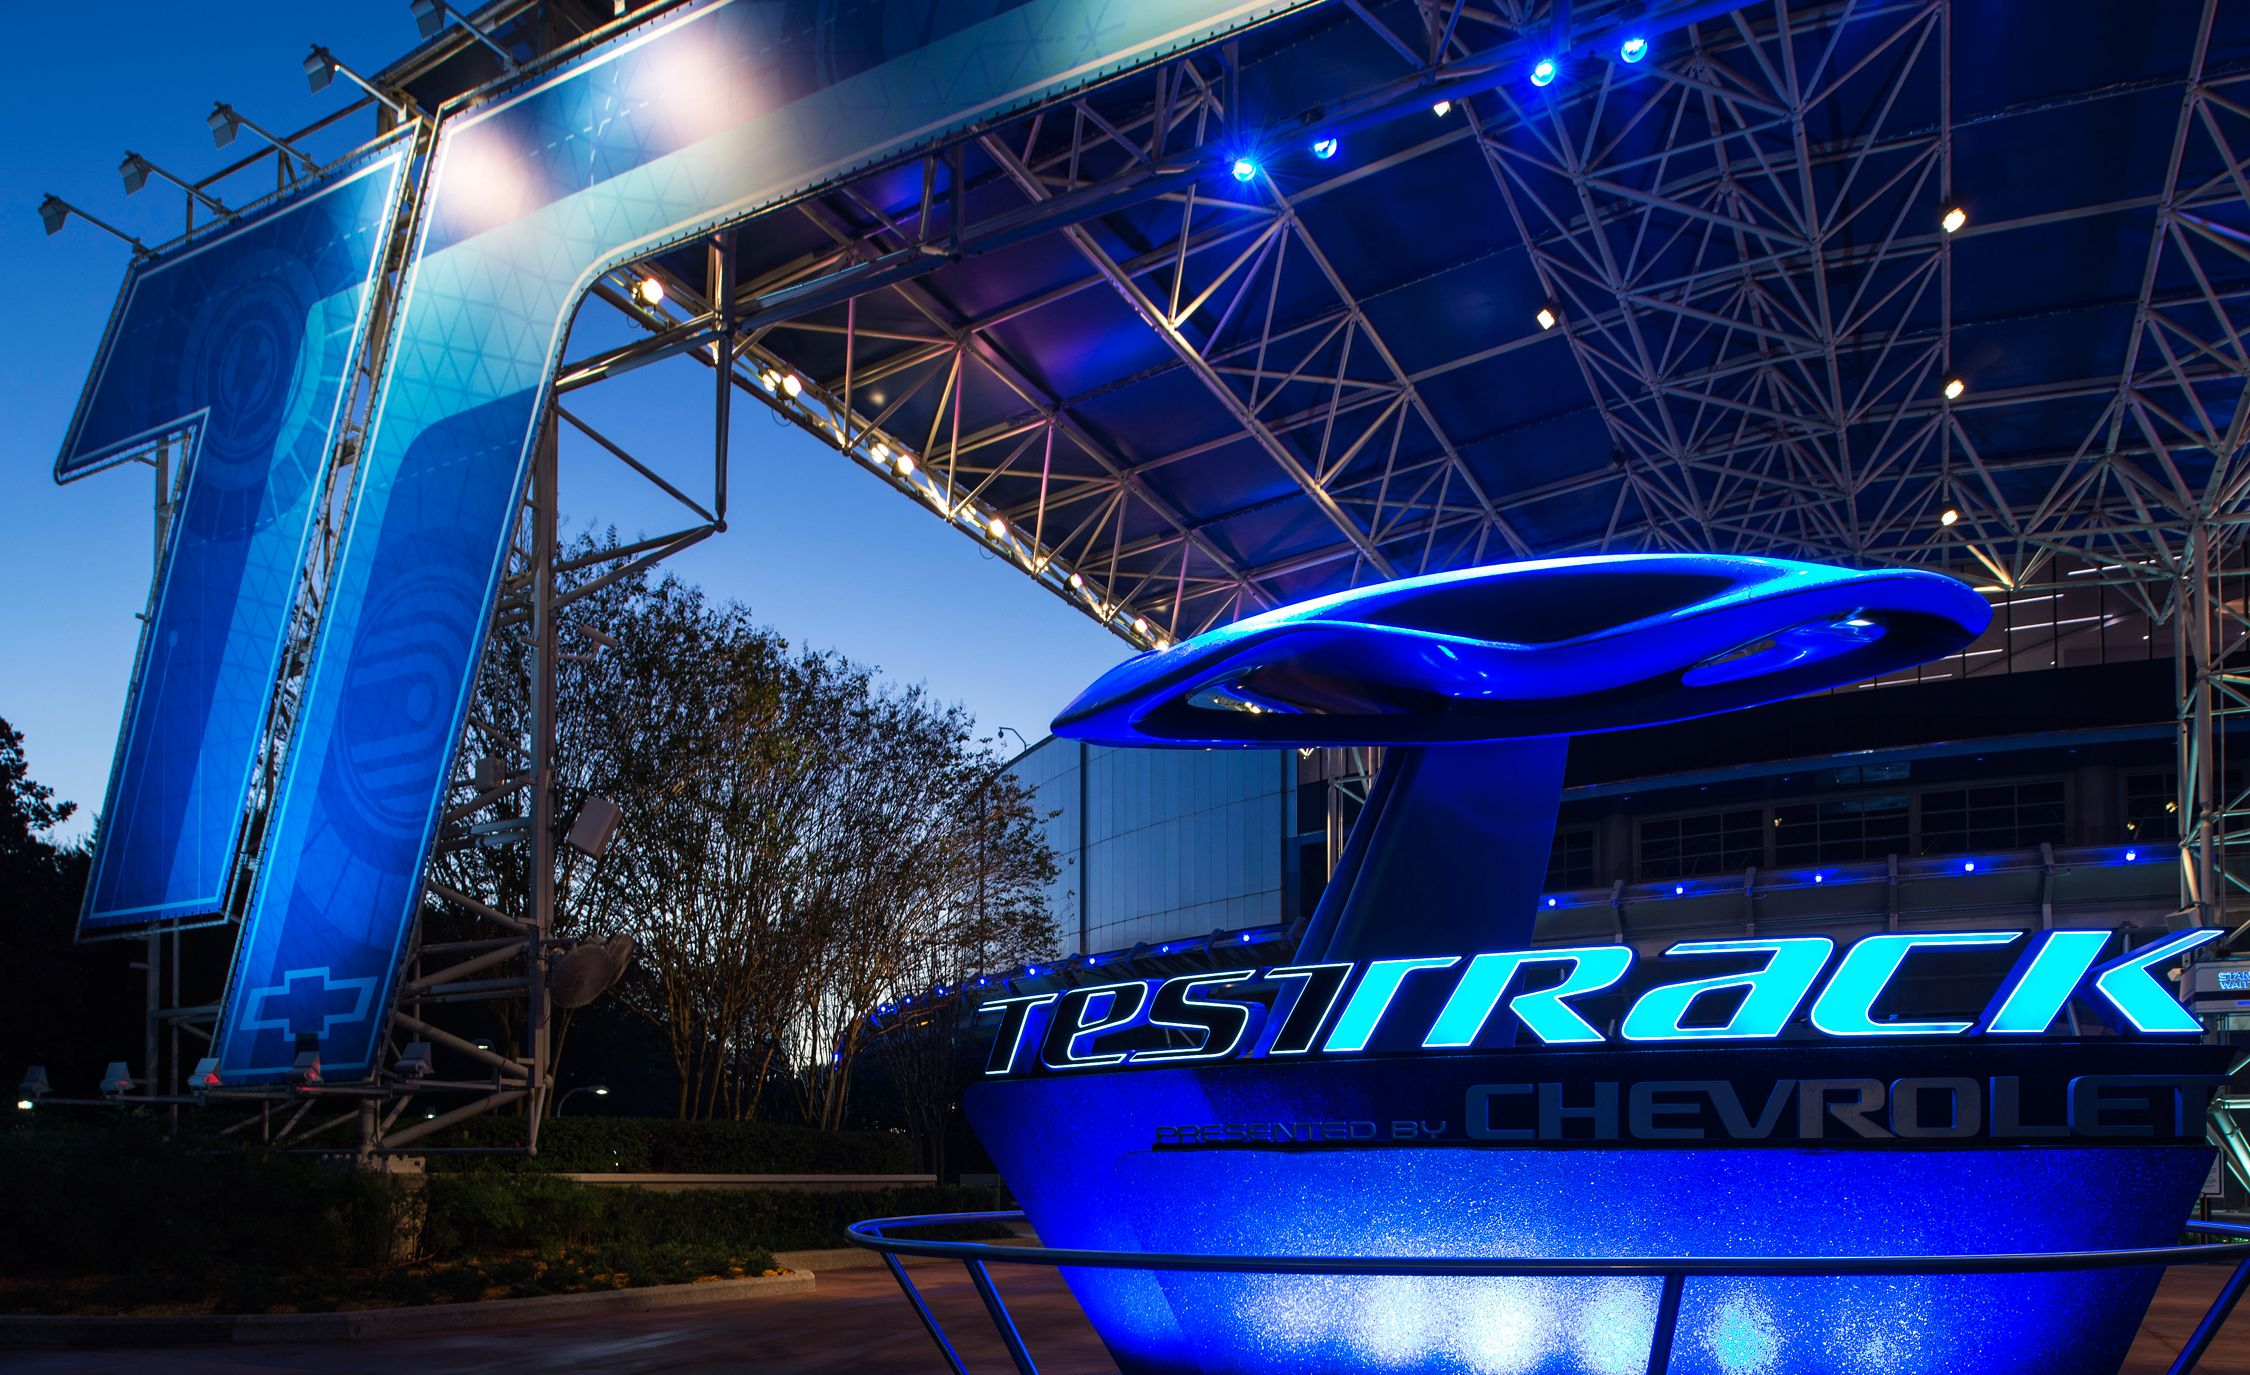 Epcot Center's Test Track Reviewed by a Nine-Year-Old